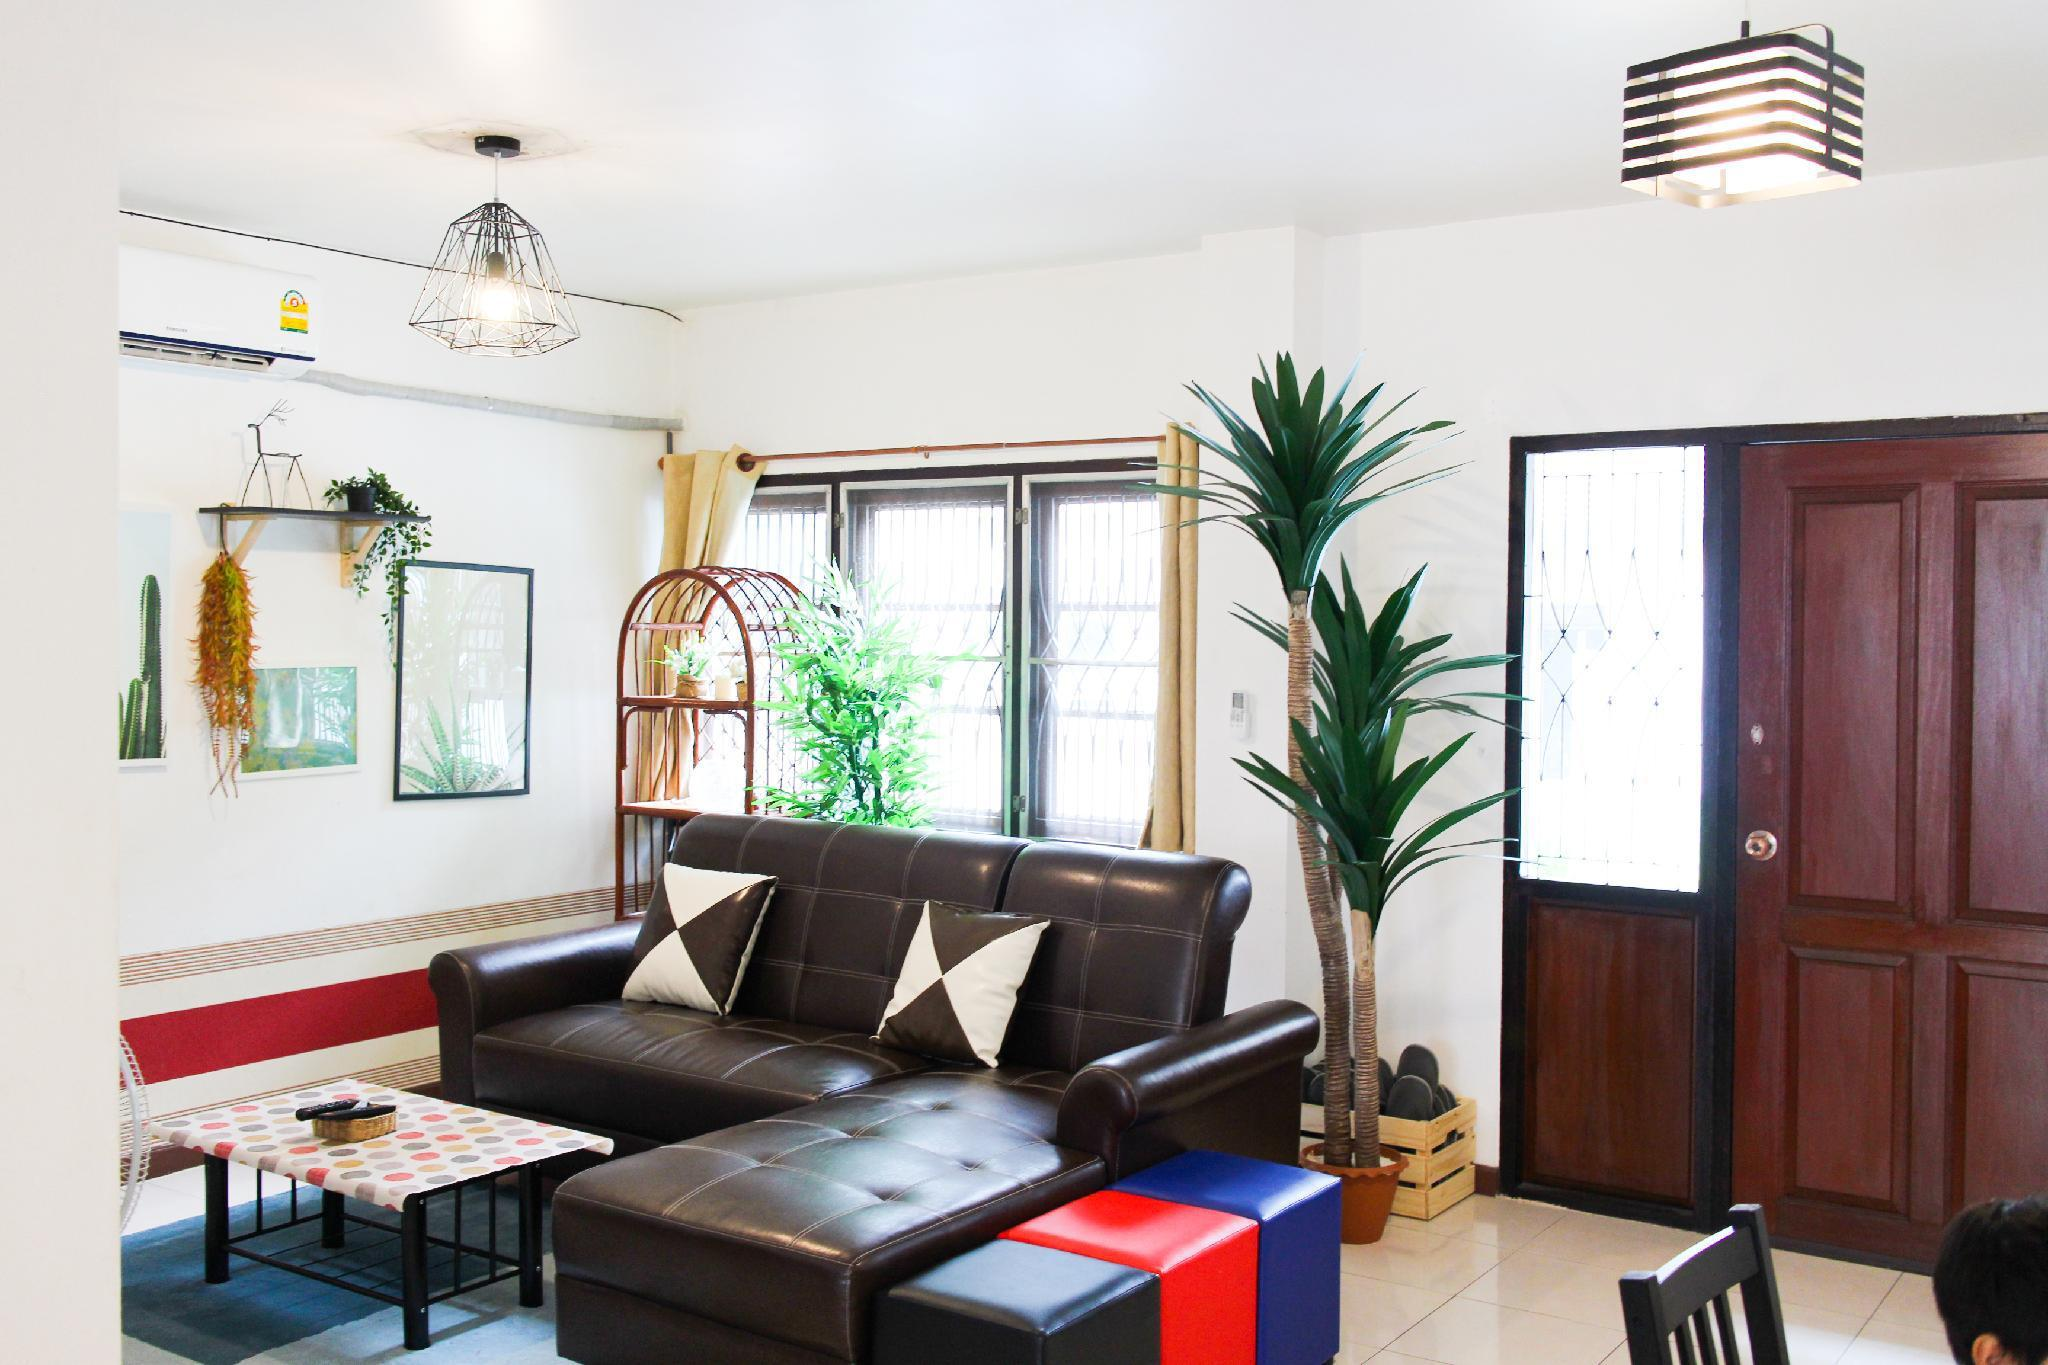 7min to Asoke, Terminal21 on foot! 4BR House! 7min to Asoke, Terminal21 on foot! 4BR House!